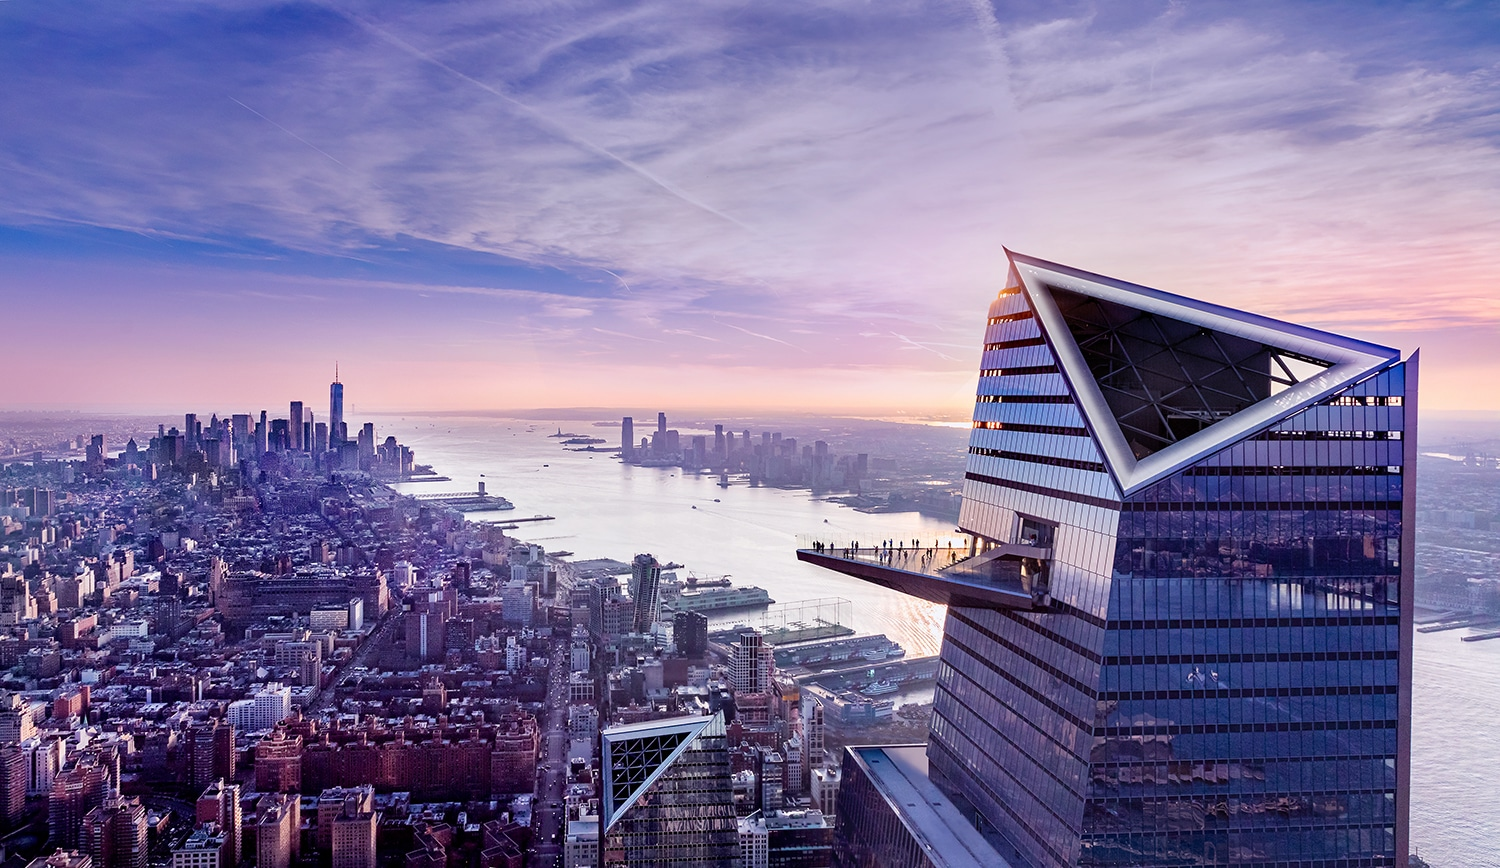 Aerial view of 30 Hudson Yards observation deck,